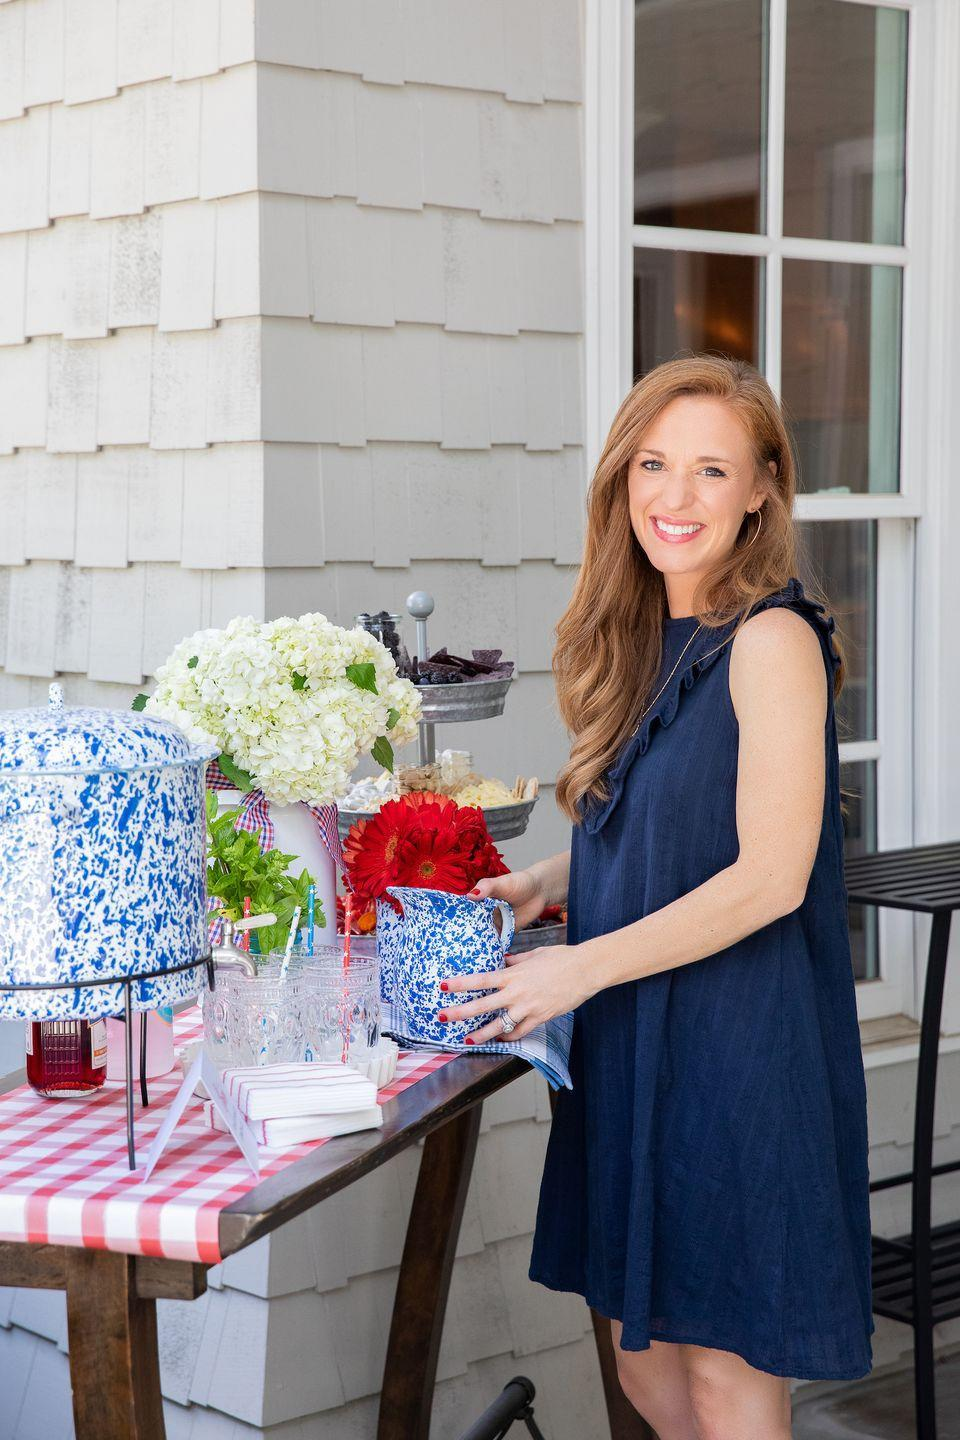 """<p>Katie Jacobs is a Nashville-based tastemaker and author of <em><a href=""""https://www.amazon.com/So-Much-Celebrate-Entertaining-Through/dp/0718075188?tag=syn-yahoo-20&ascsubtag=%5Bartid%7C10063.g.36916404%5Bsrc%7Cyahoo-us"""" rel=""""nofollow noopener"""" target=""""_blank"""" data-ylk=""""slk:So Much to Celebrate"""" class=""""link rapid-noclick-resp"""">So Much to Celebrate</a>. </em>She is also a stylist, photographer, graphic designer, and founder of <em><a href=""""https://stylingmyeveryday.com/about"""" rel=""""nofollow noopener"""" target=""""_blank"""" data-ylk=""""slk:Styling My Everyday"""" class=""""link rapid-noclick-resp"""">Styling My Everyday</a>, </em>a popular lifestyle blog. (Follow her at <a href=""""https://www.instagram.com/katiejacobsnashville/?hl=en"""" rel=""""nofollow noopener"""" target=""""_blank"""" data-ylk=""""slk:@katiejacobsnashville"""" class=""""link rapid-noclick-resp"""">@katiejacobsnashville</a>)</p>"""